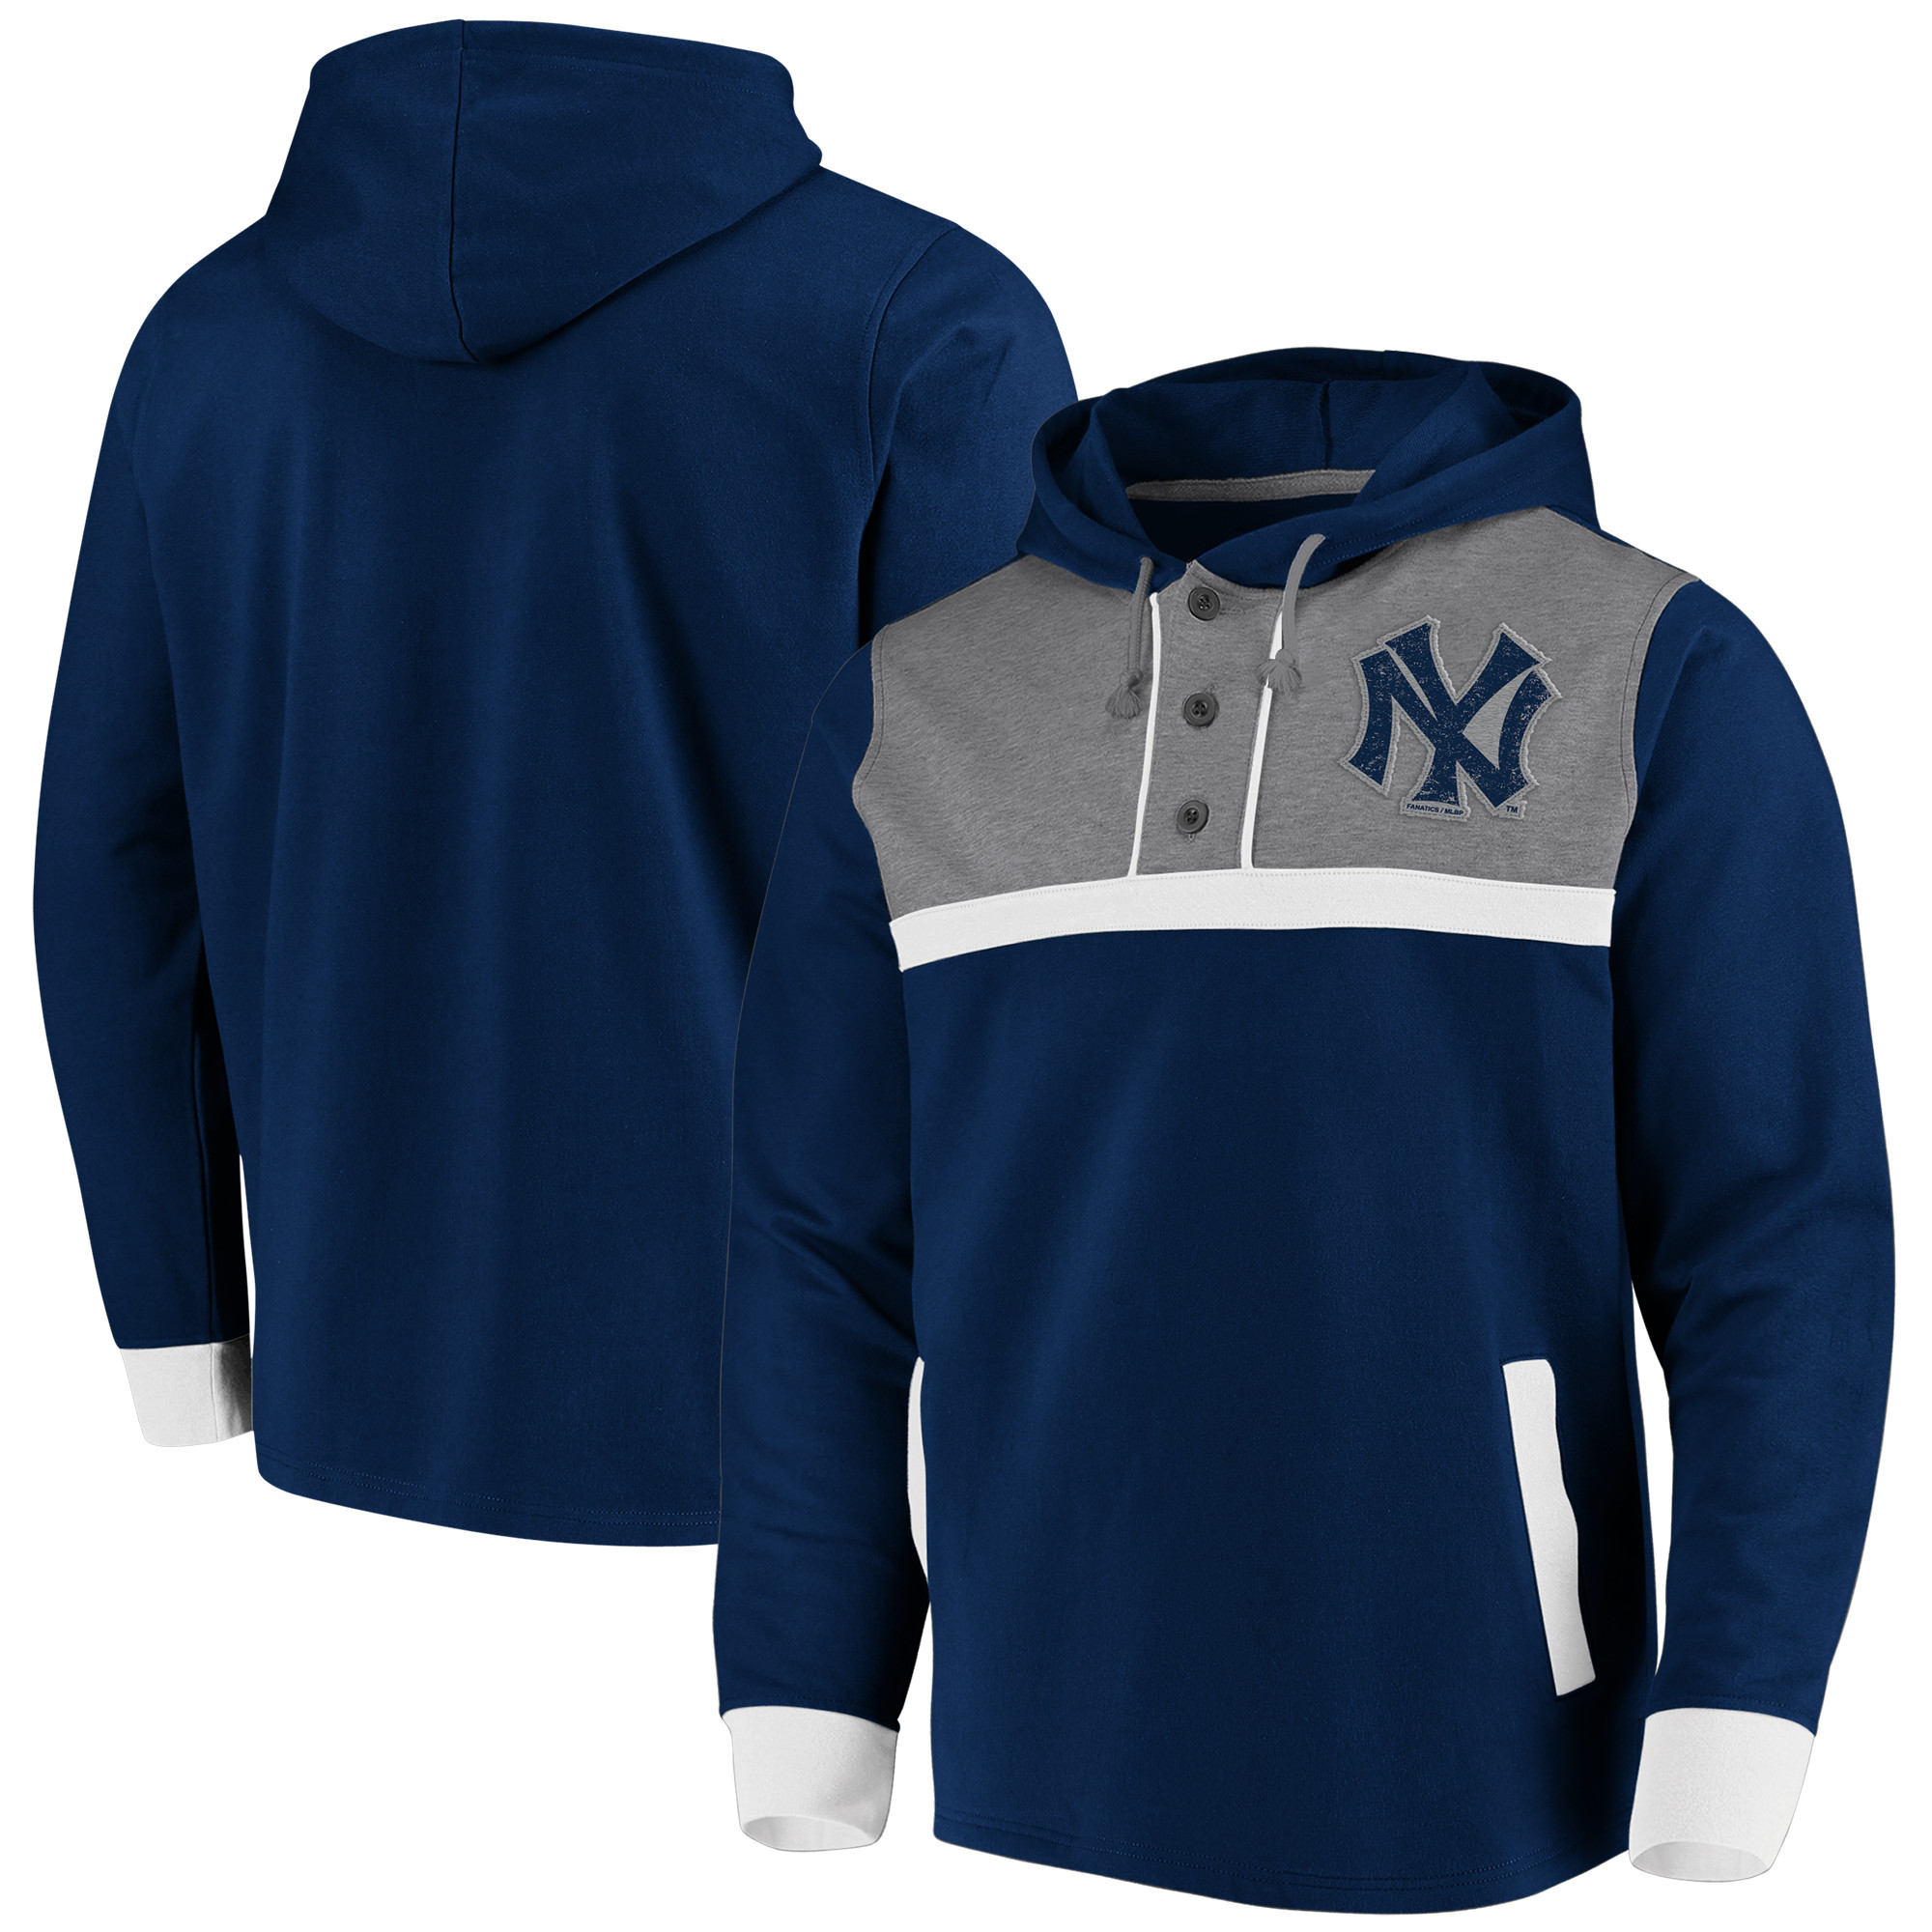 New York Yankees Fanatics Branded True Classics Button-Up Henley Pullover Hoodie - Navy/Heathered Gray